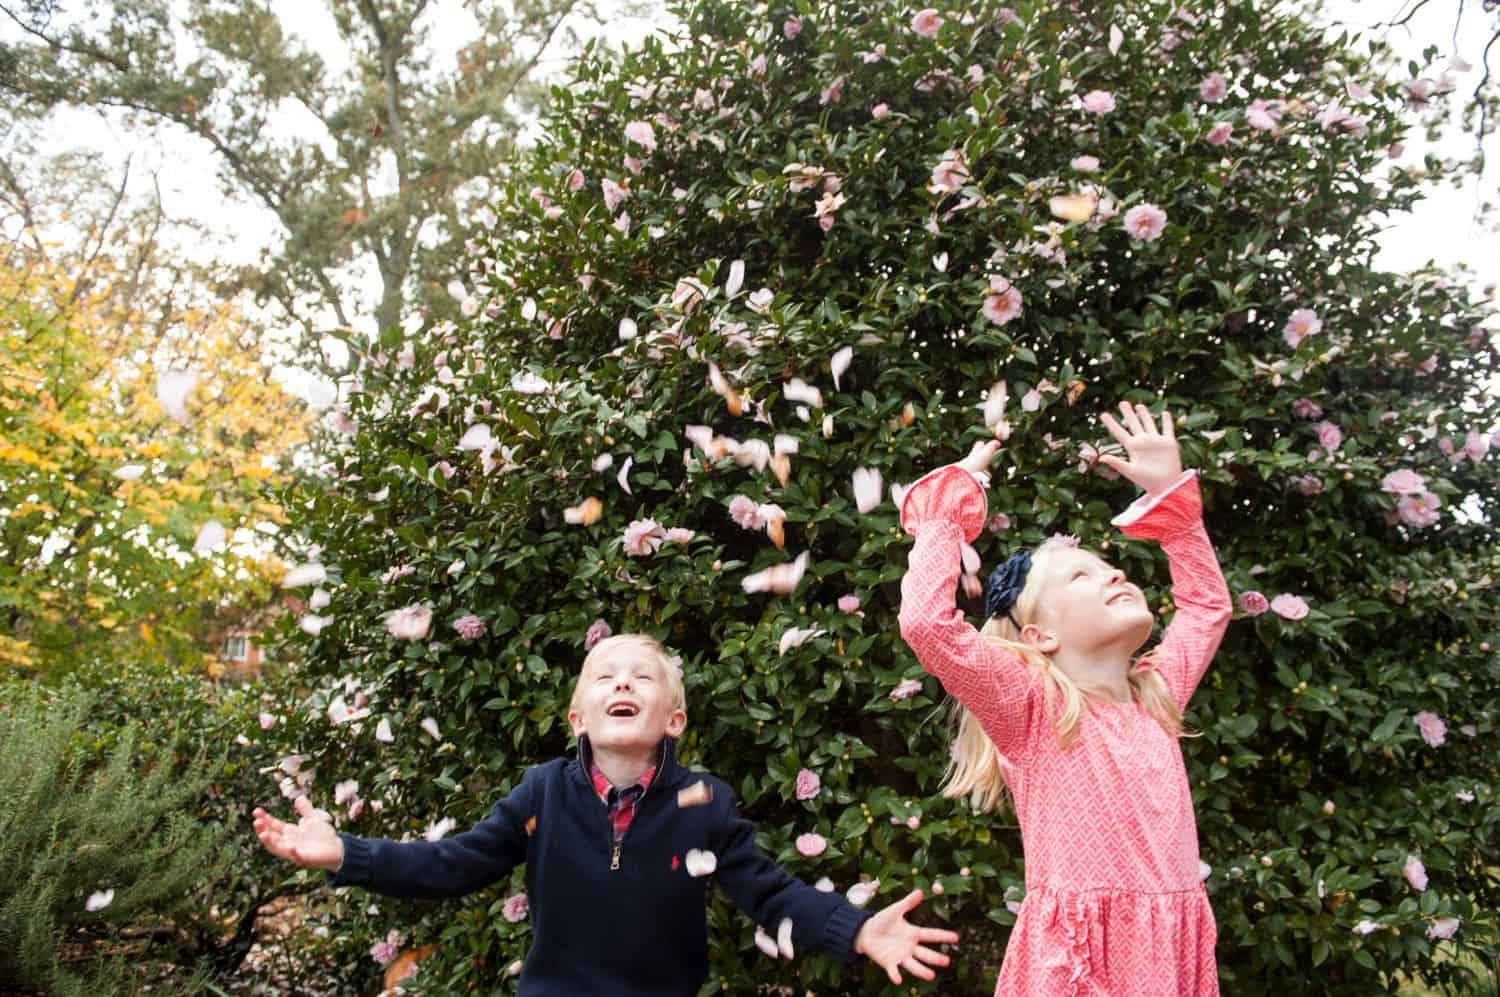 A brother and sister throw pink flower petals into the air.